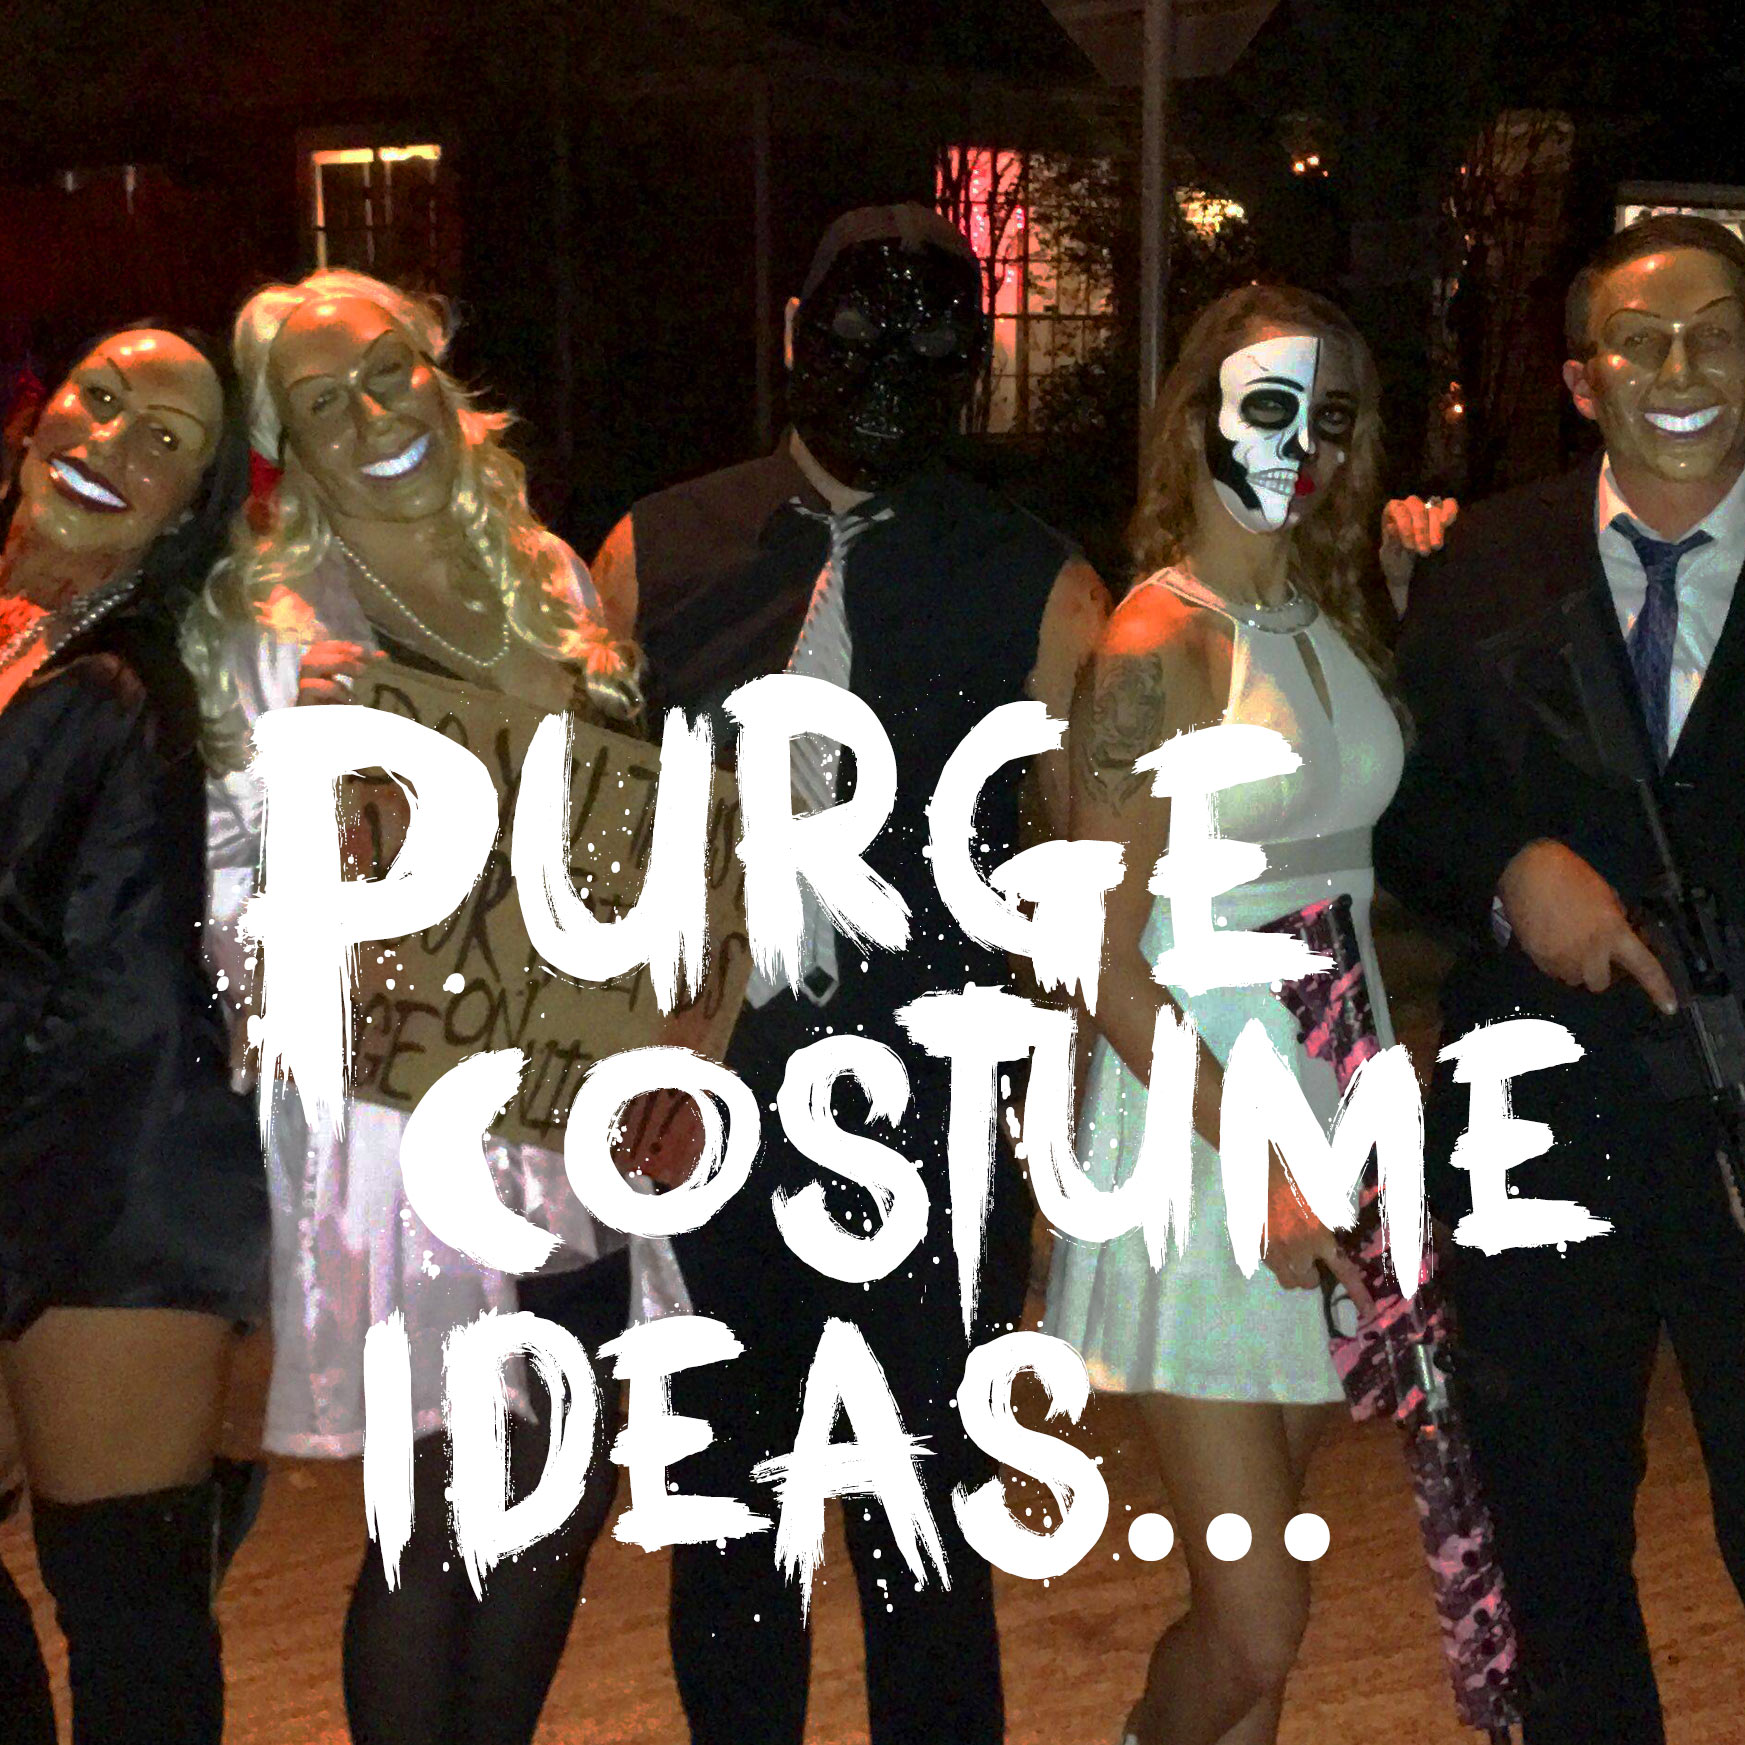 purge costume ideas – loaded nightclub & lounge